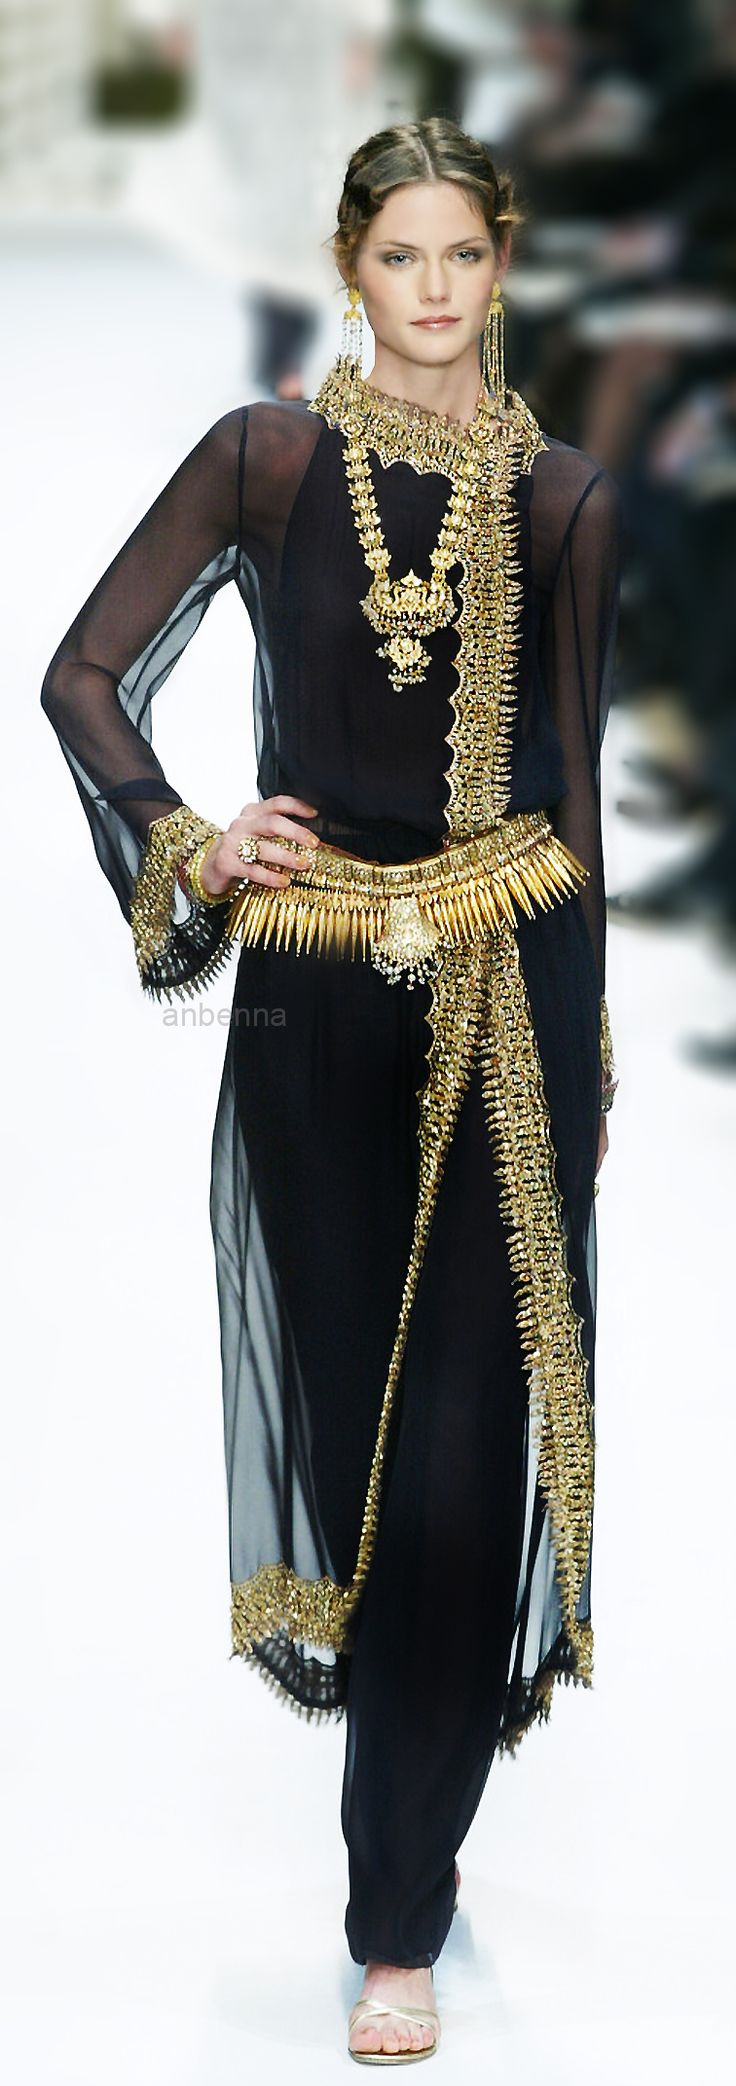 Black dress with touch of red - Find This Pin And More On Black With A Touch Of Gold Silver Or Red